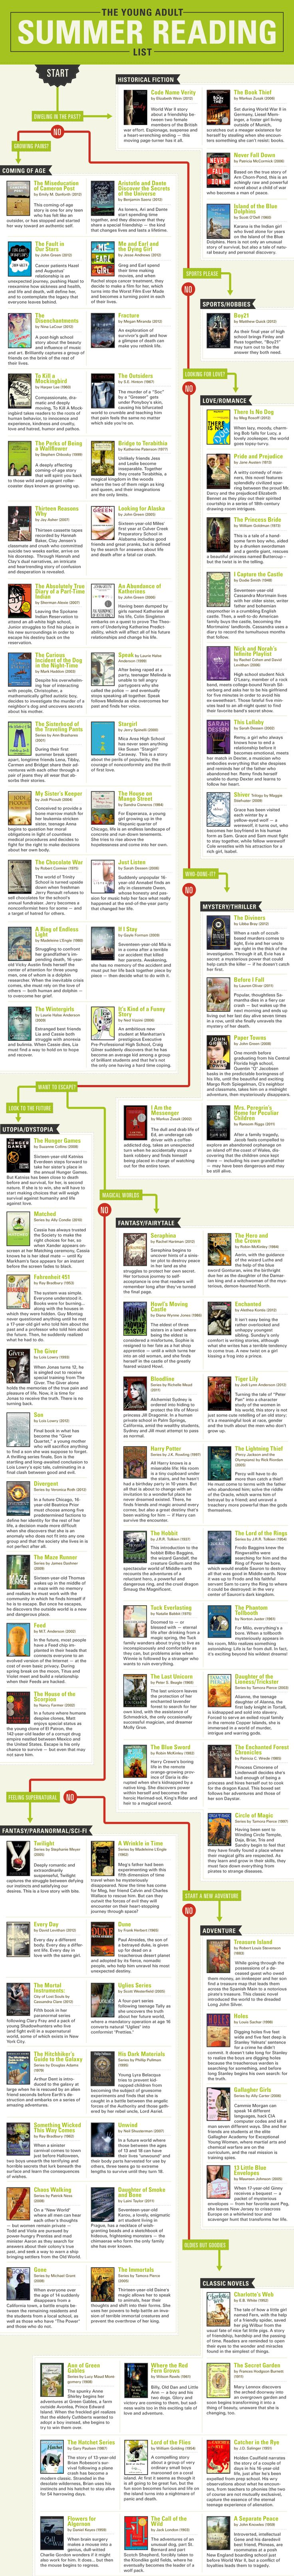 http://teach.com/wp-content/uploads/2013/07/The-Young-Adults-Summer-Reading-Flowchart.gif